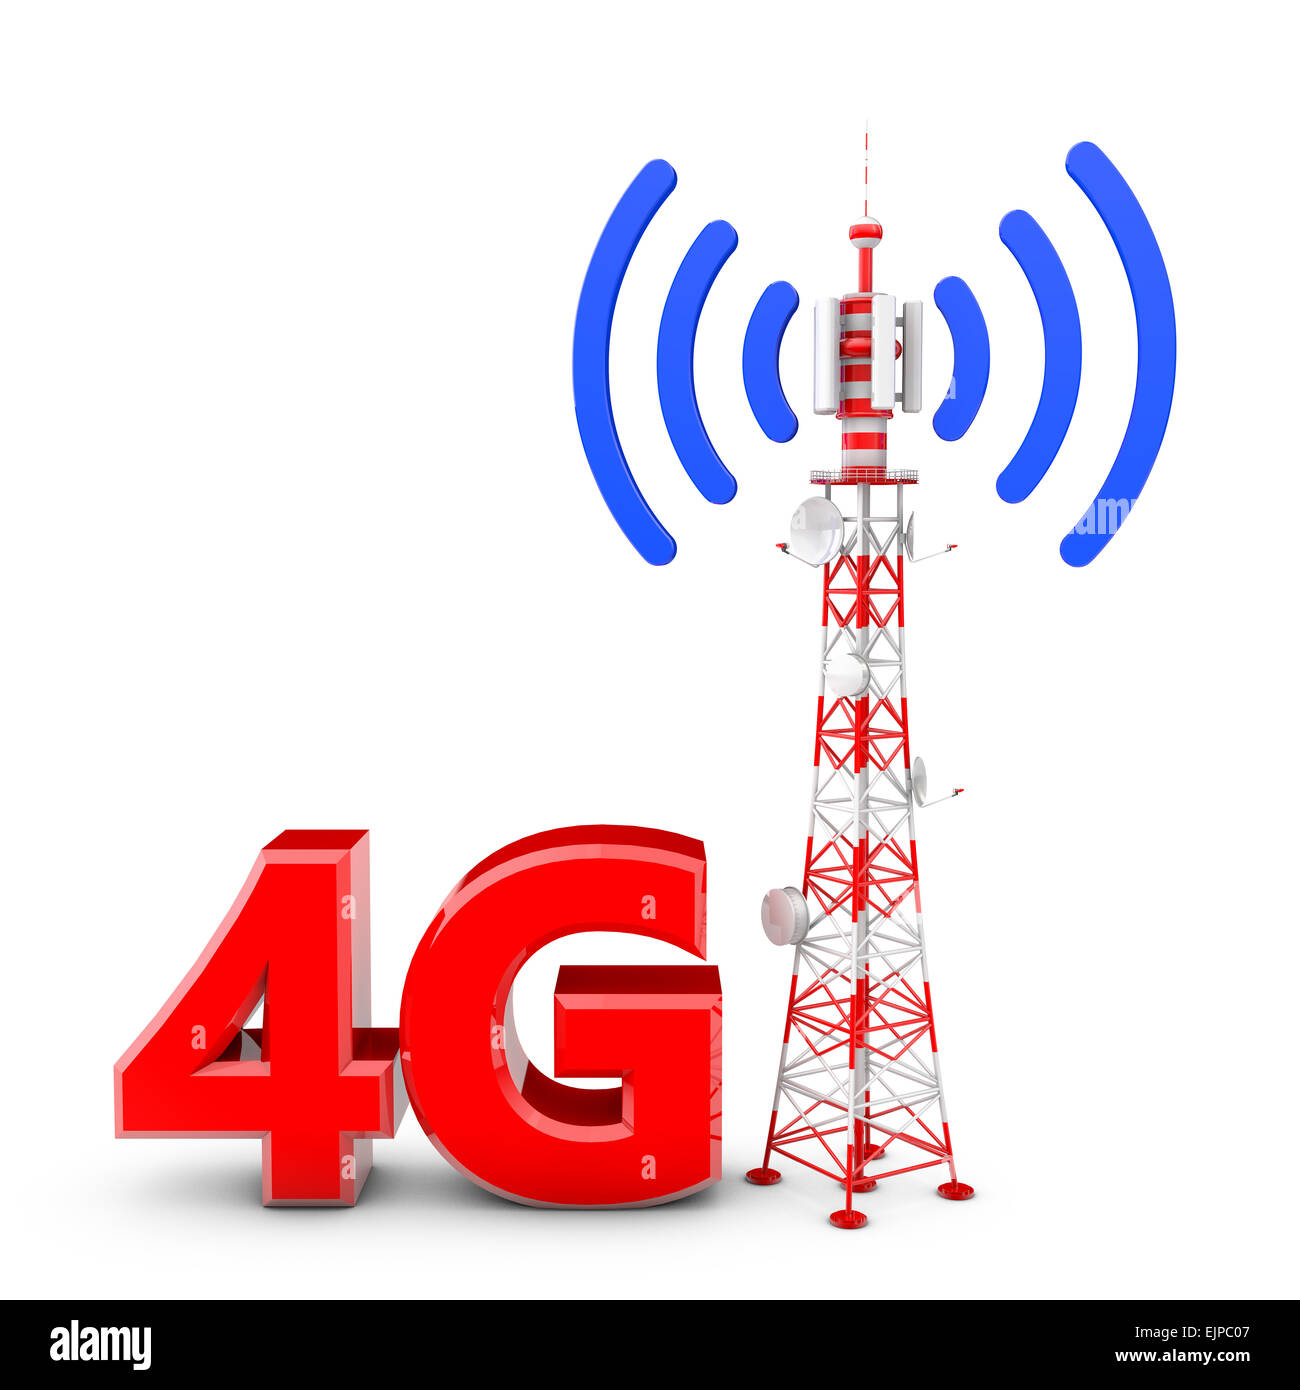 Telecommunication tower with the emitted signal and the red letters: 4G - Stock Image